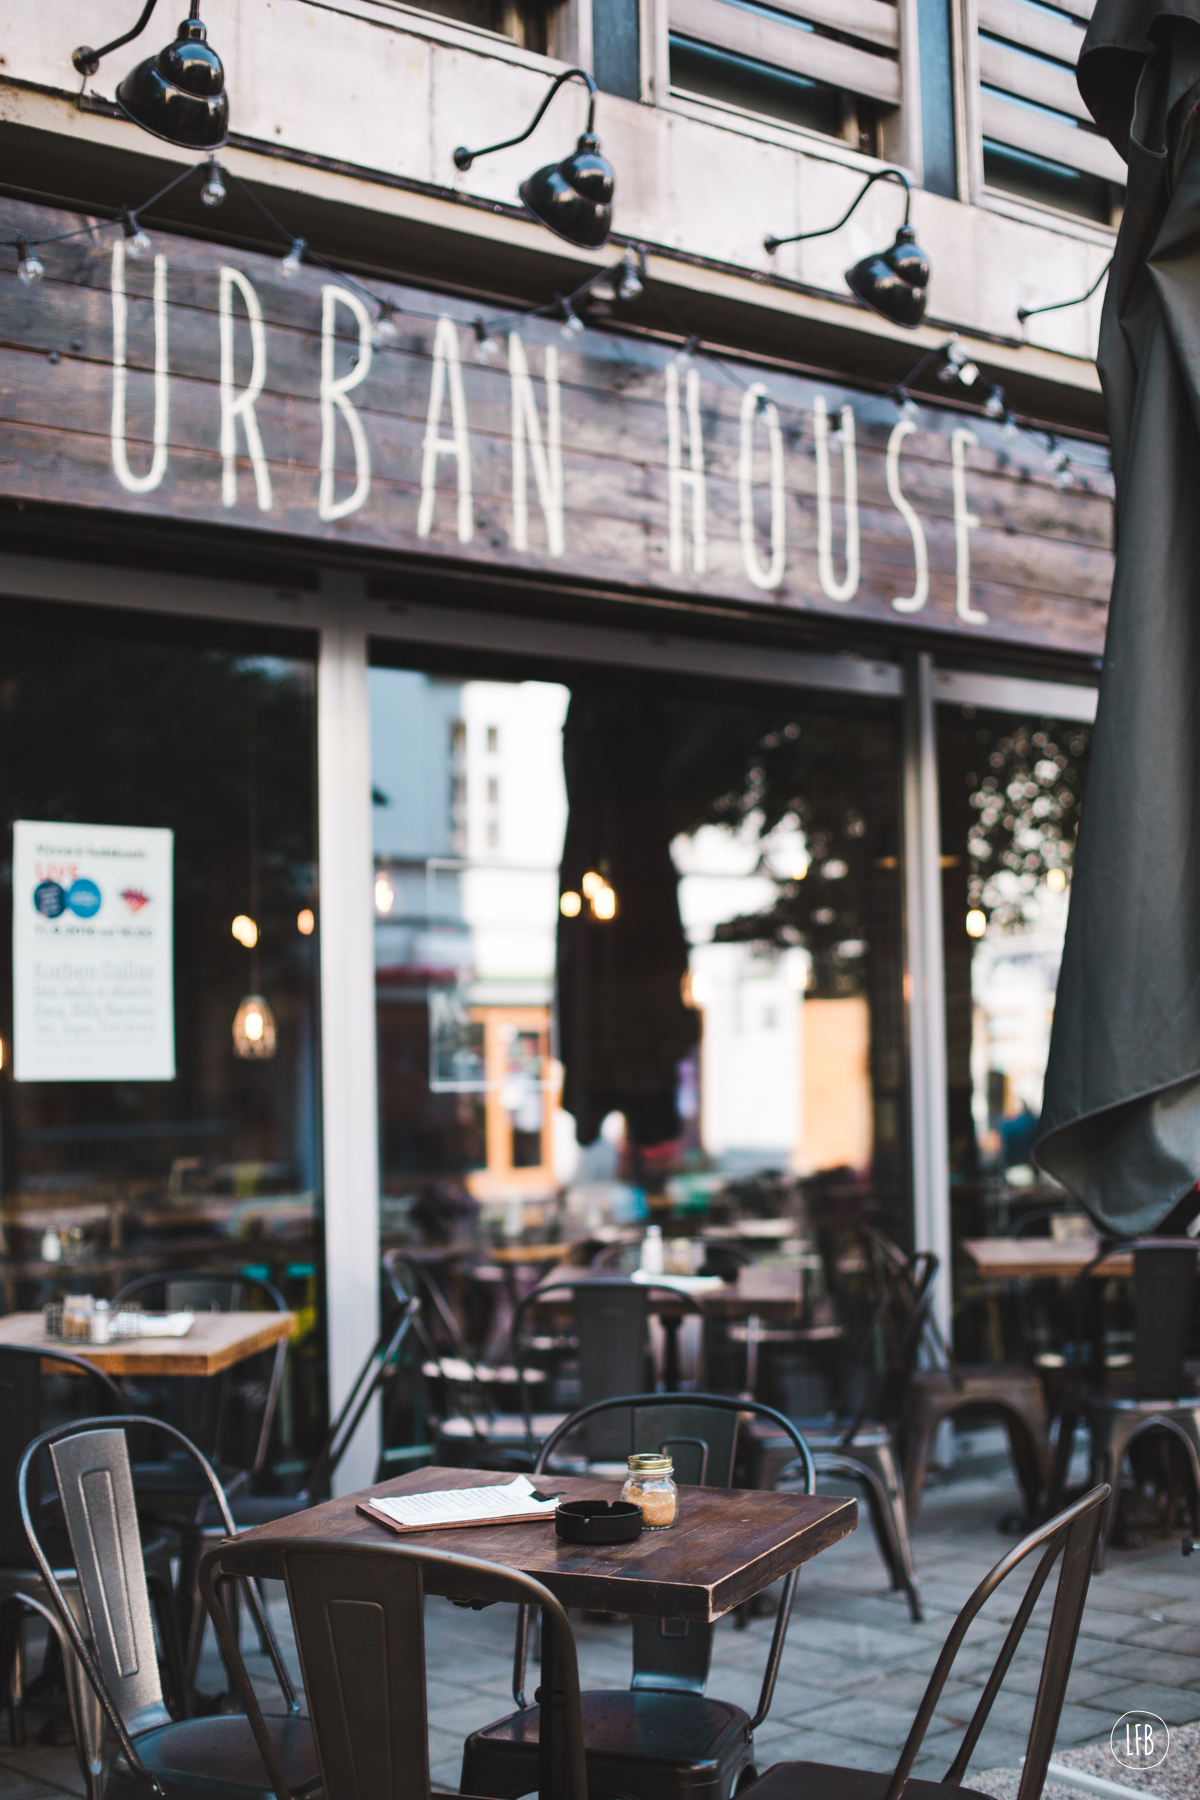 Urban House, Bratislava photographed by rae tashman for lovefromberlin.net